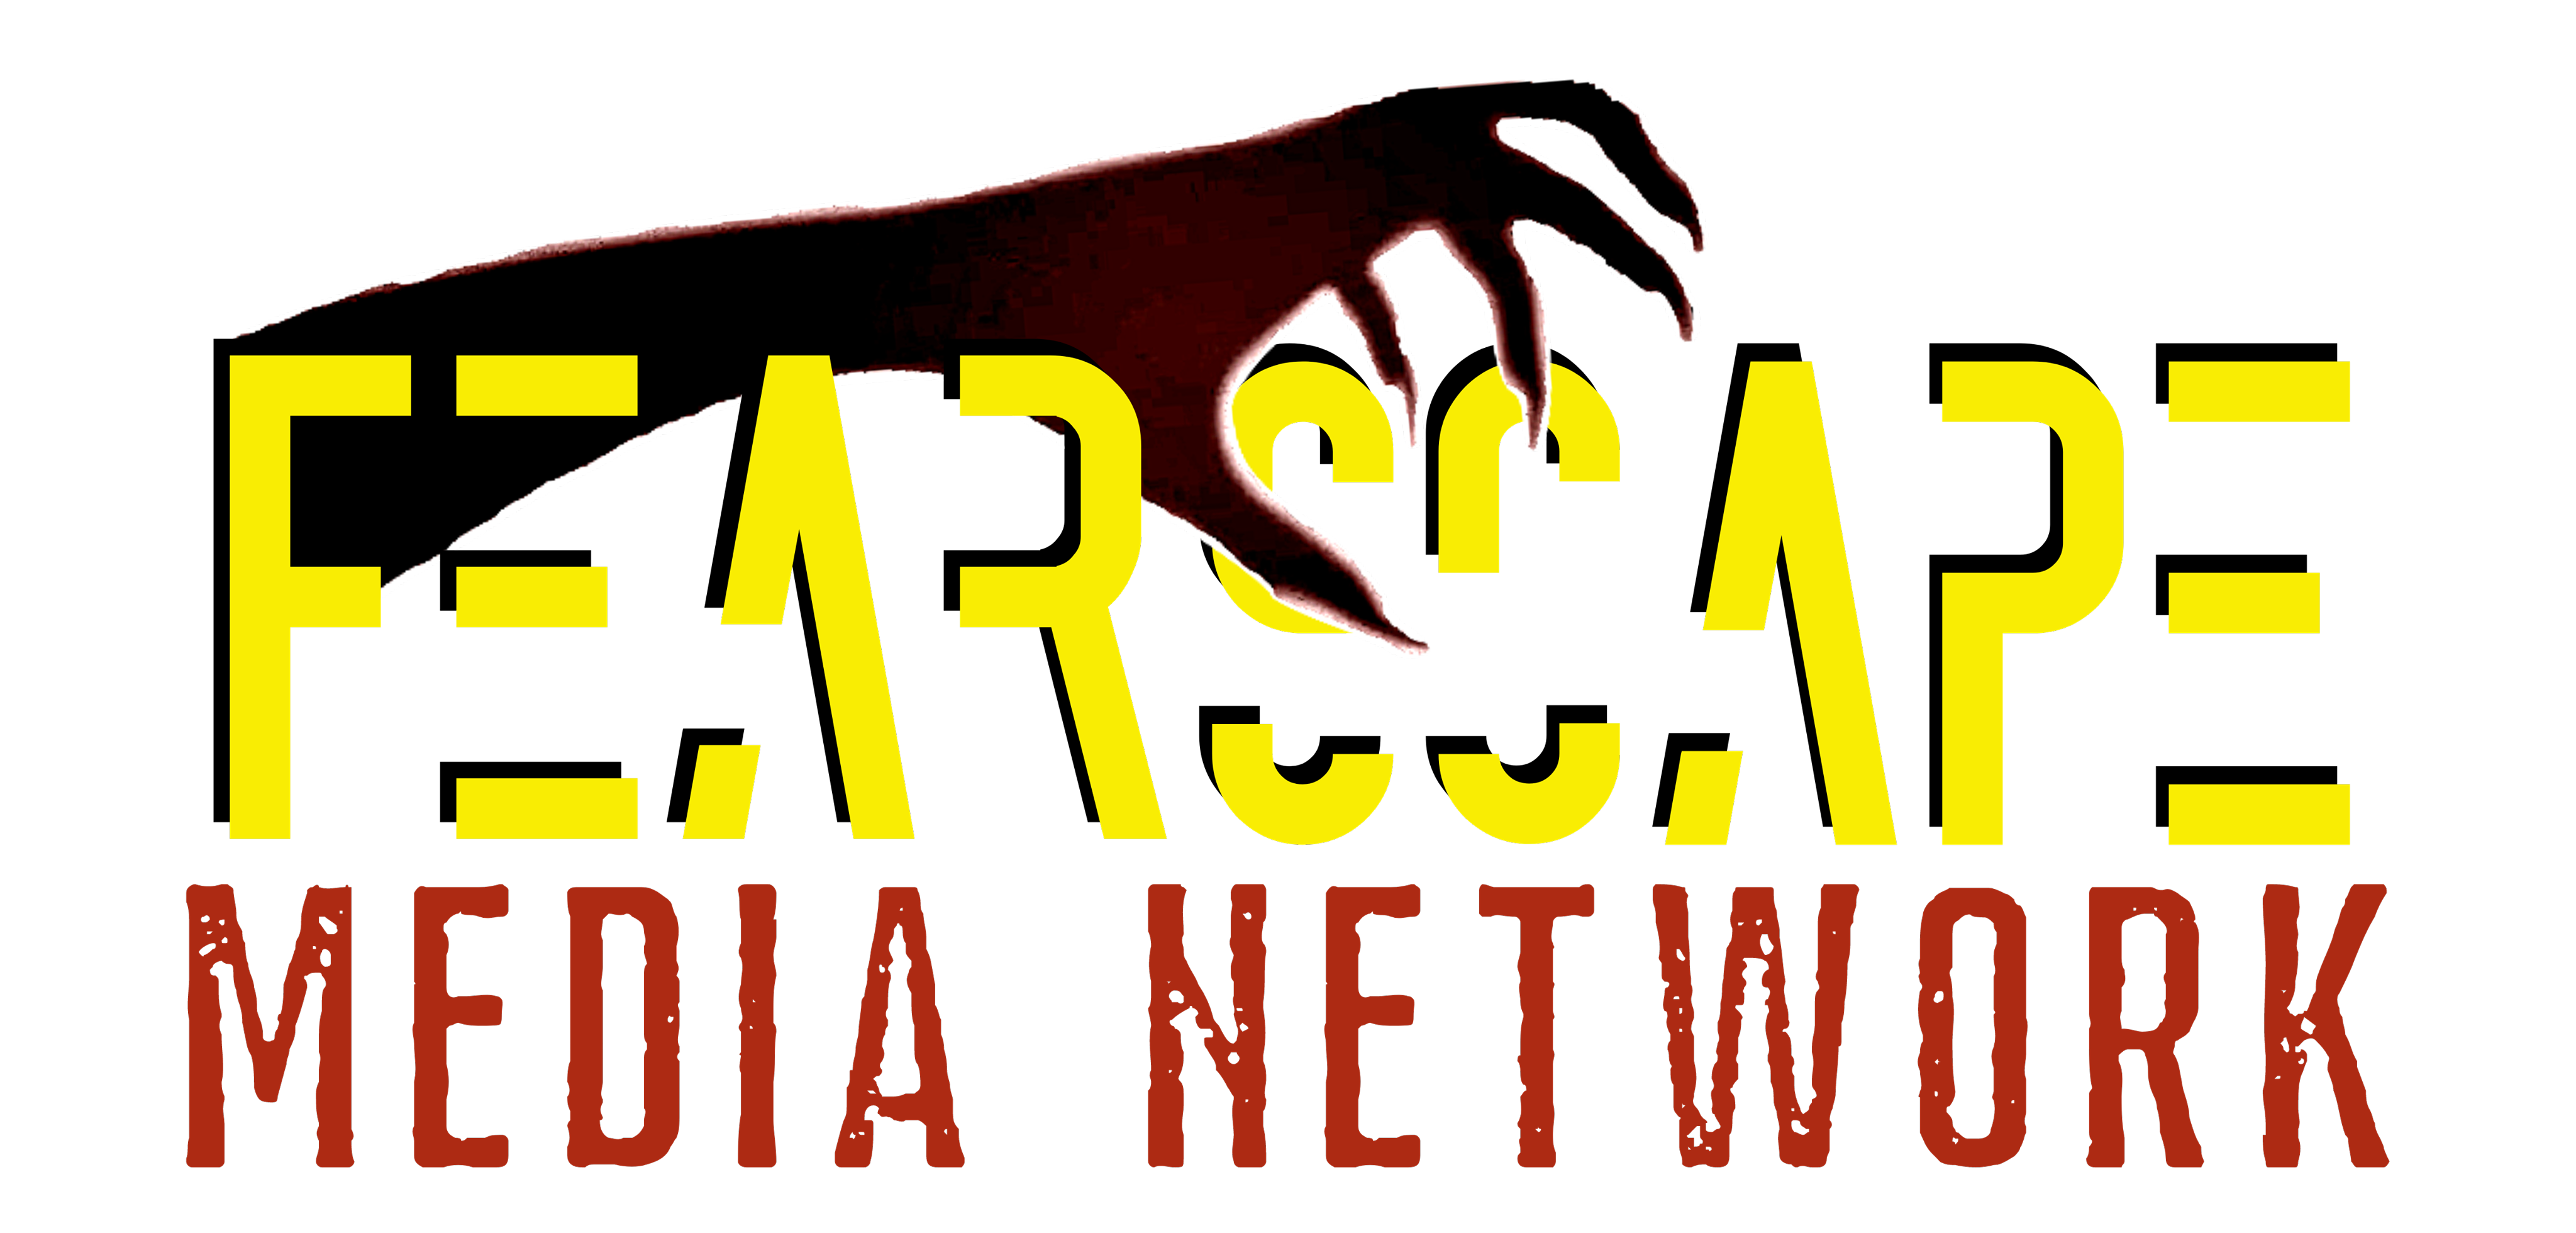 FearScape Media Network